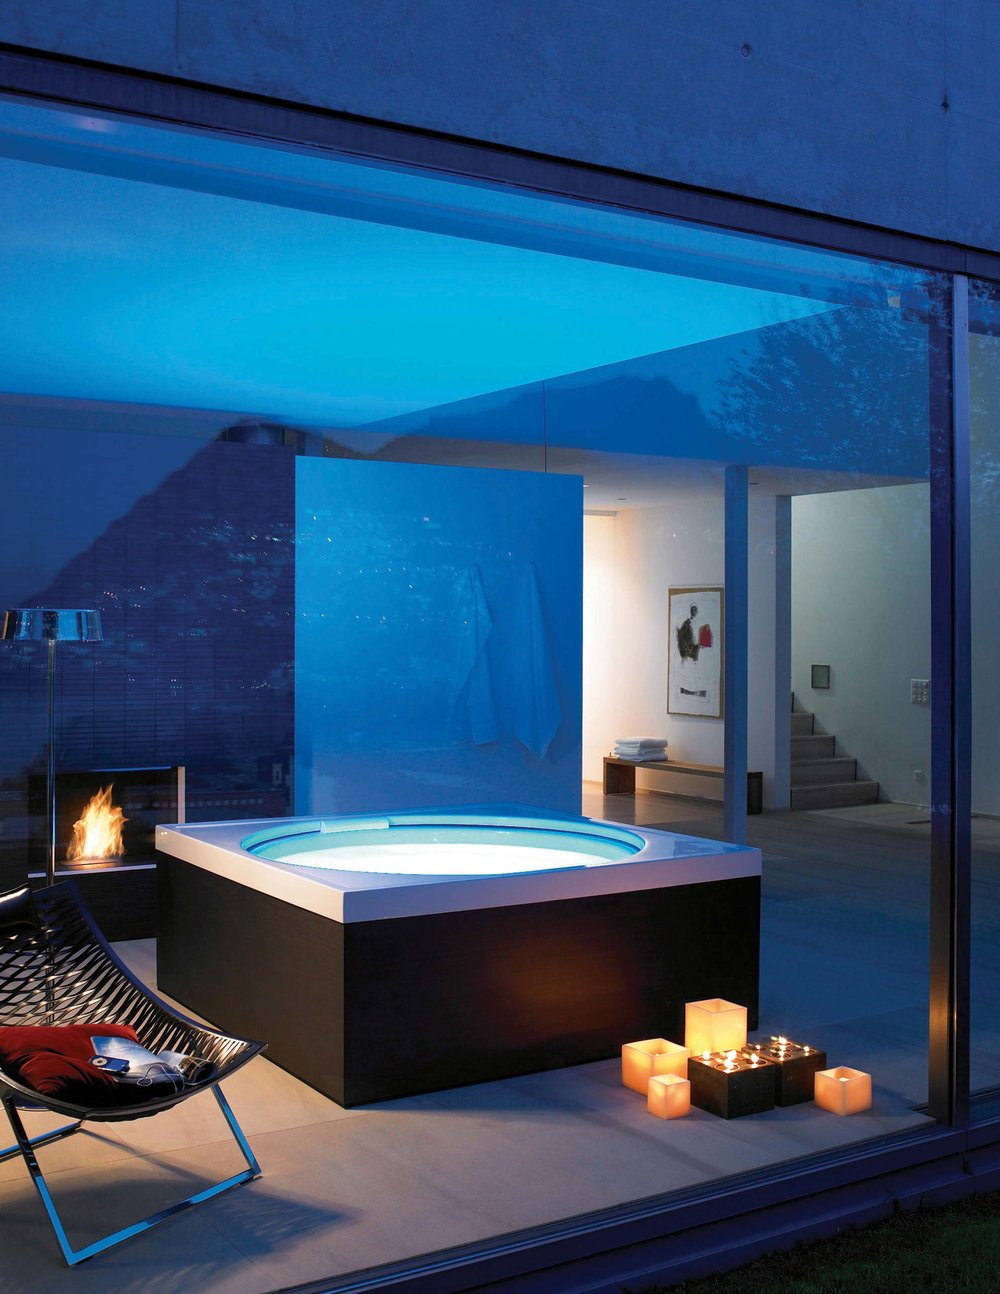 Duravit Blue Moon Pool & Bathtub Dual-purpose outdoor-indoor tub.